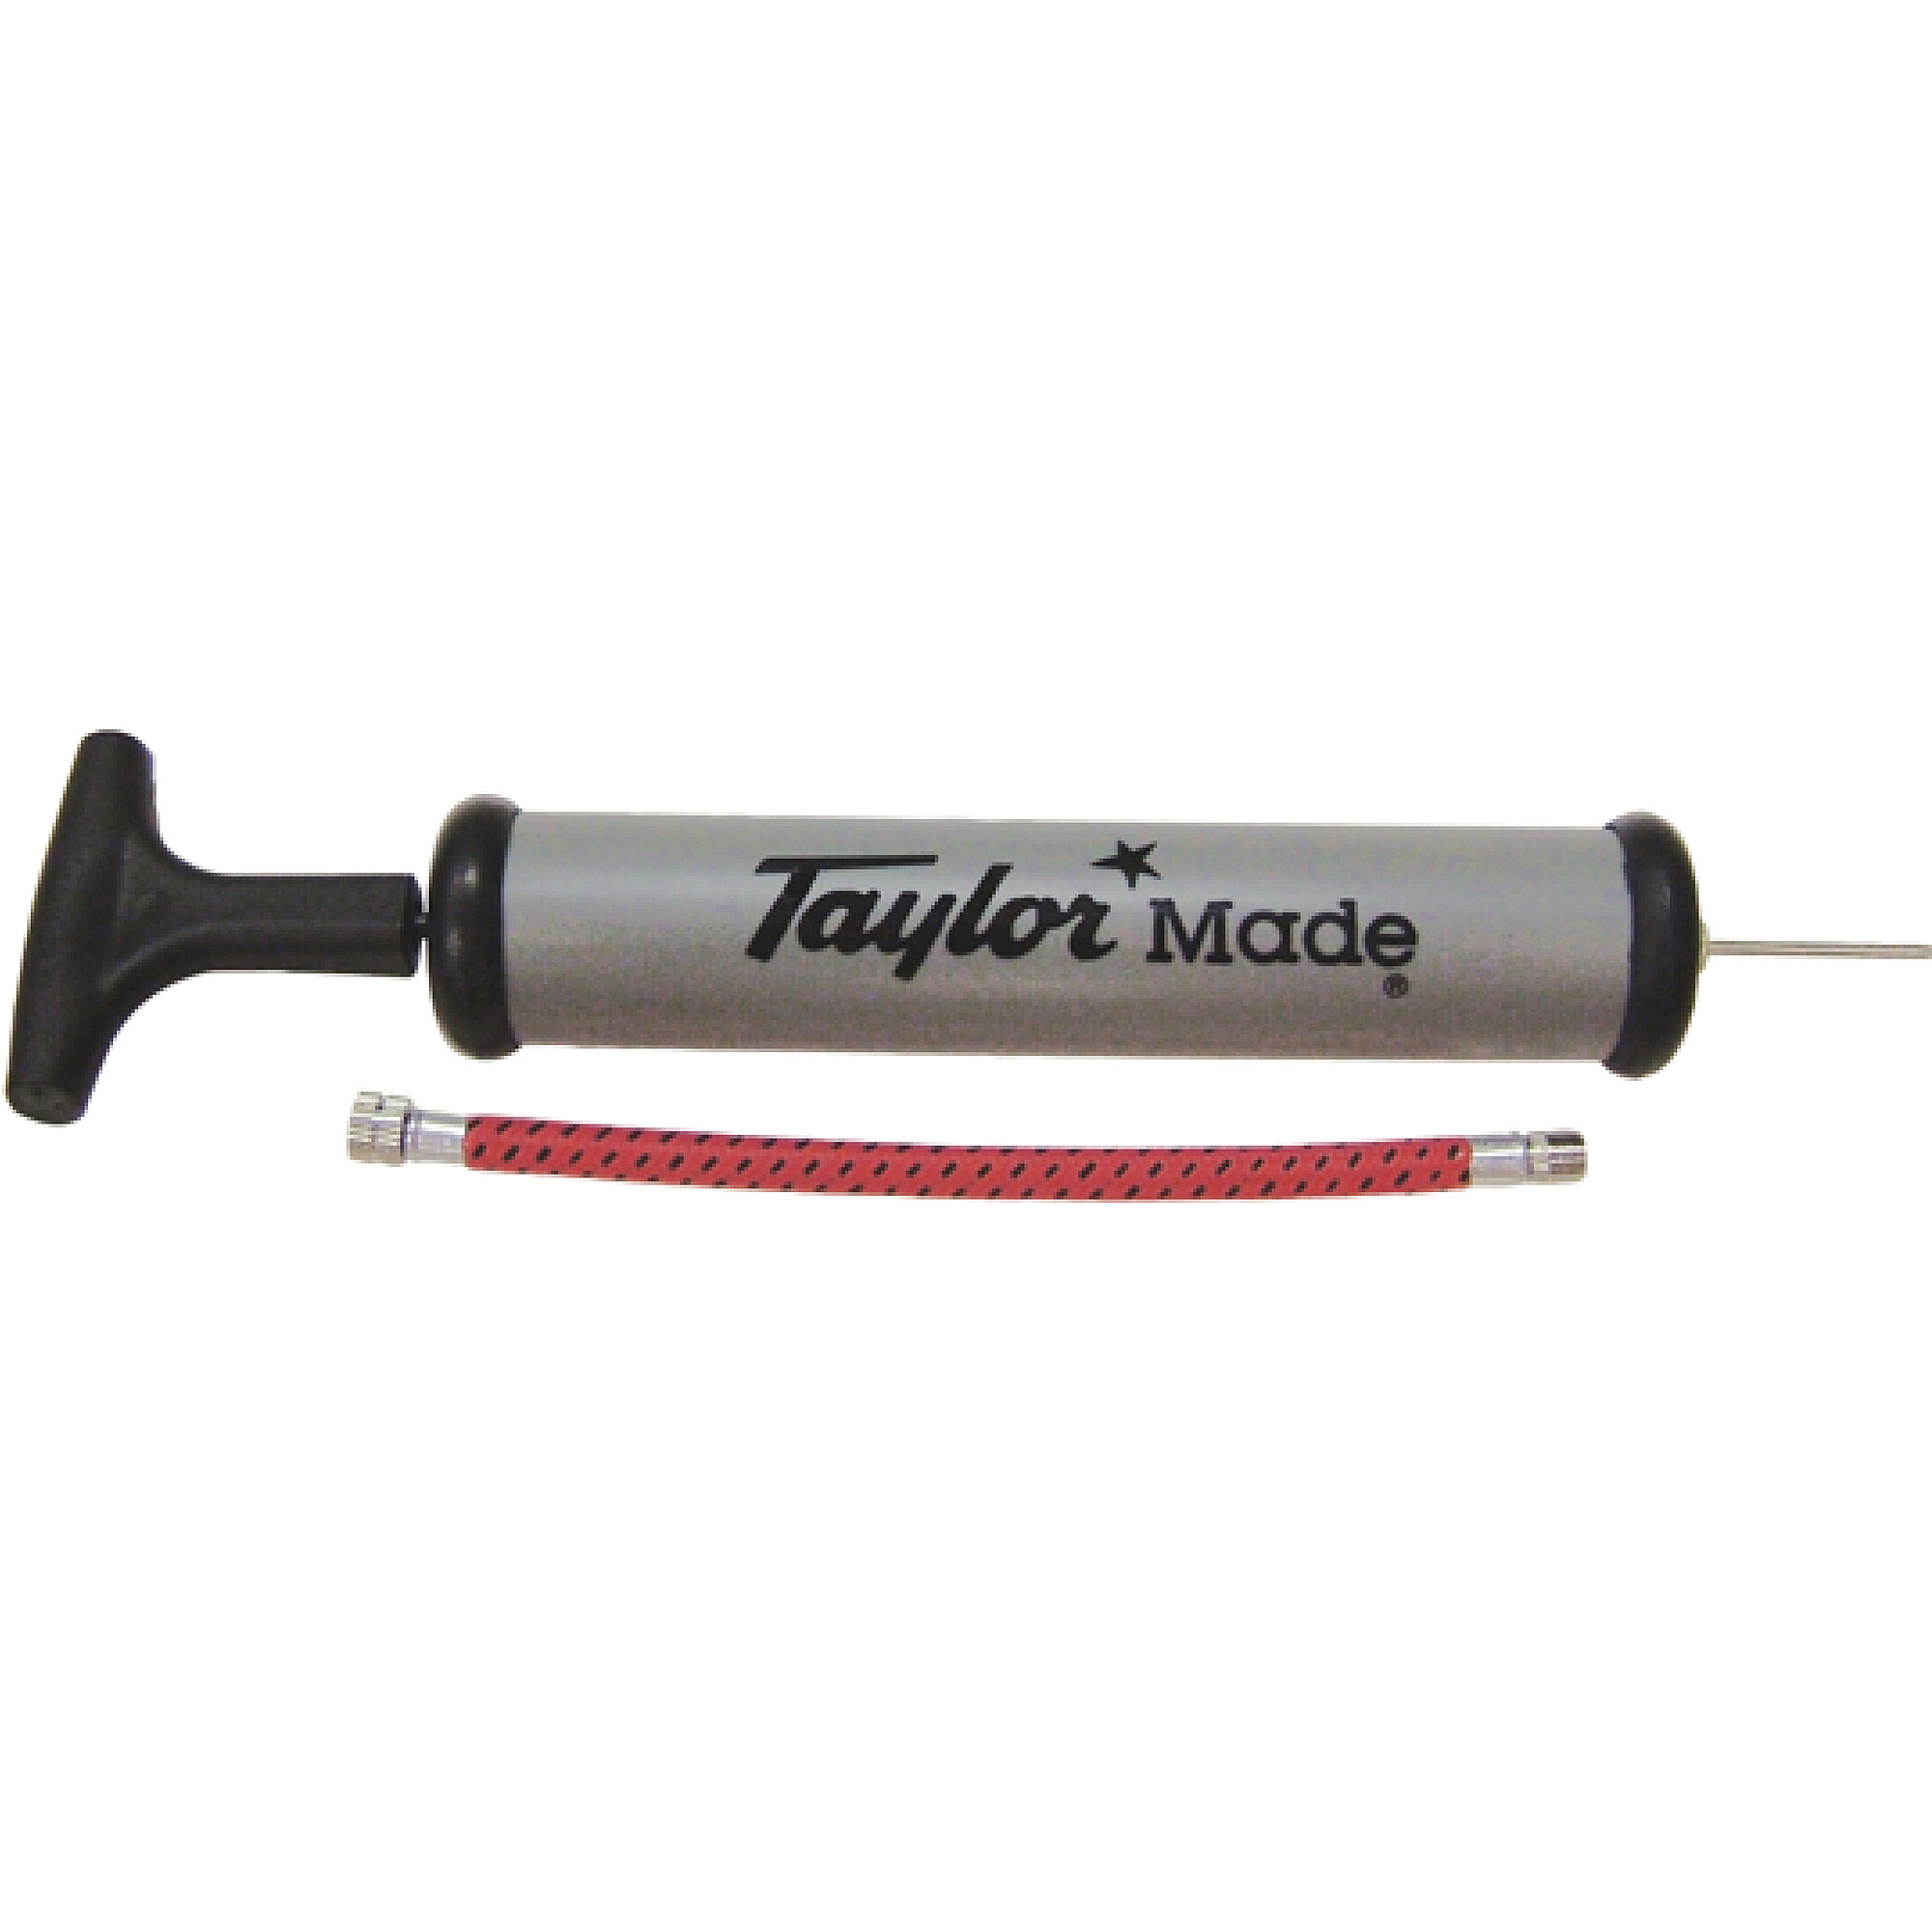 Taylor Hand Pump with Hose Adapter